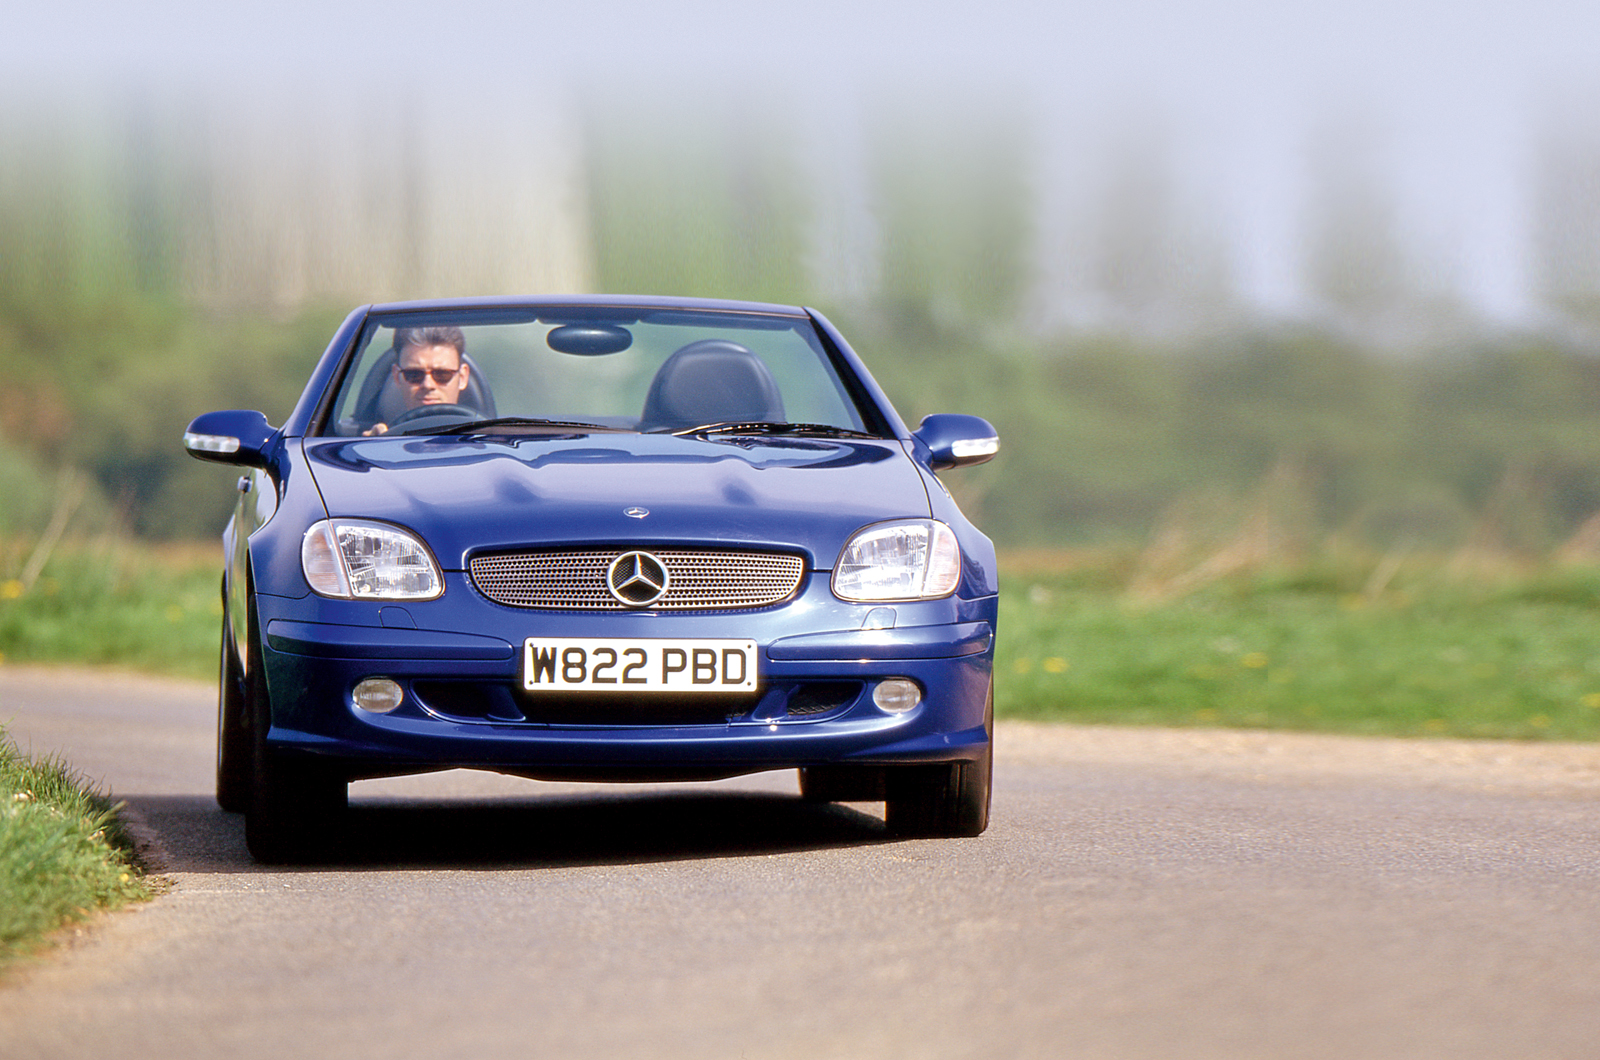 mercslk mercedes benz slk used car buying guide autocar Ignition Fuse Keeps Blowing Out at bakdesigns.co